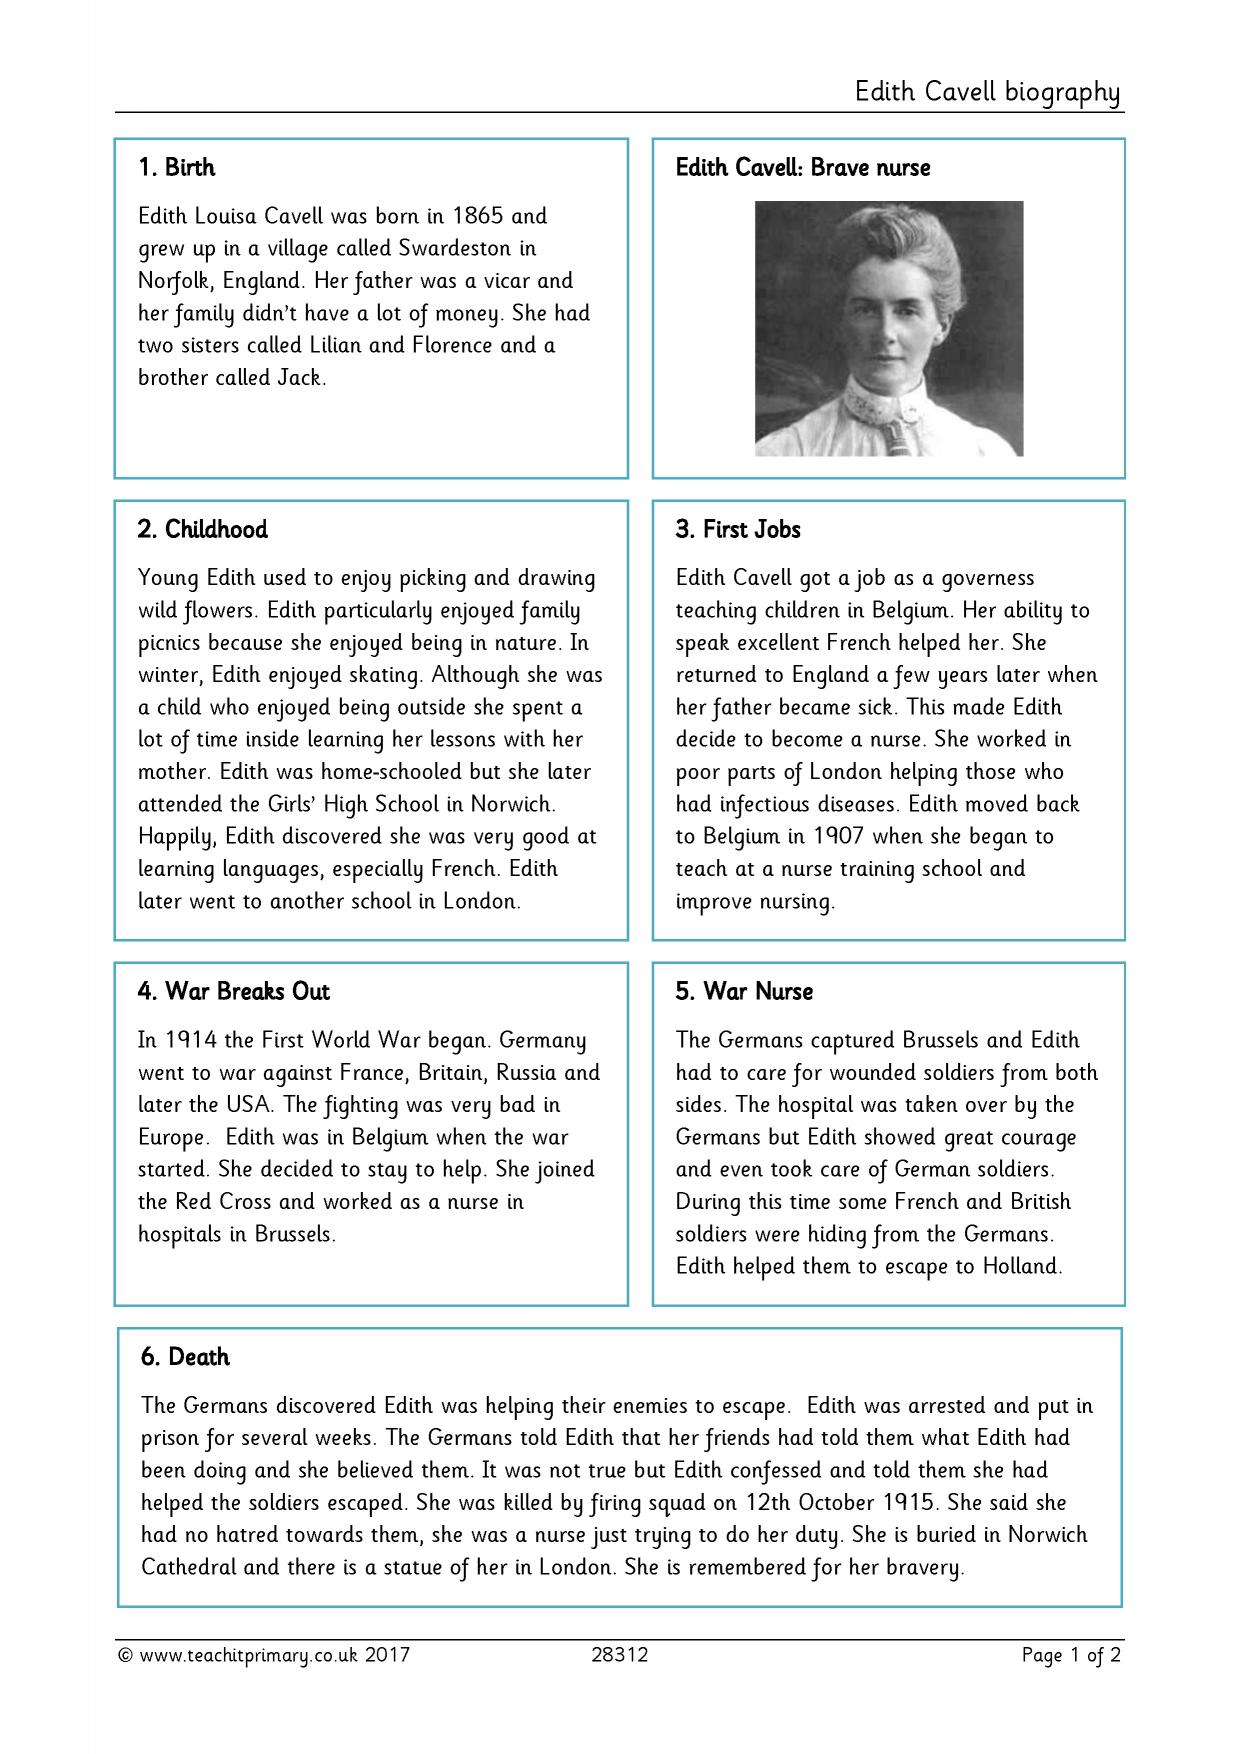 Roald Dahl Biography Ks2 Planning Biography Ks2 Word Bank Biography And Autobiography